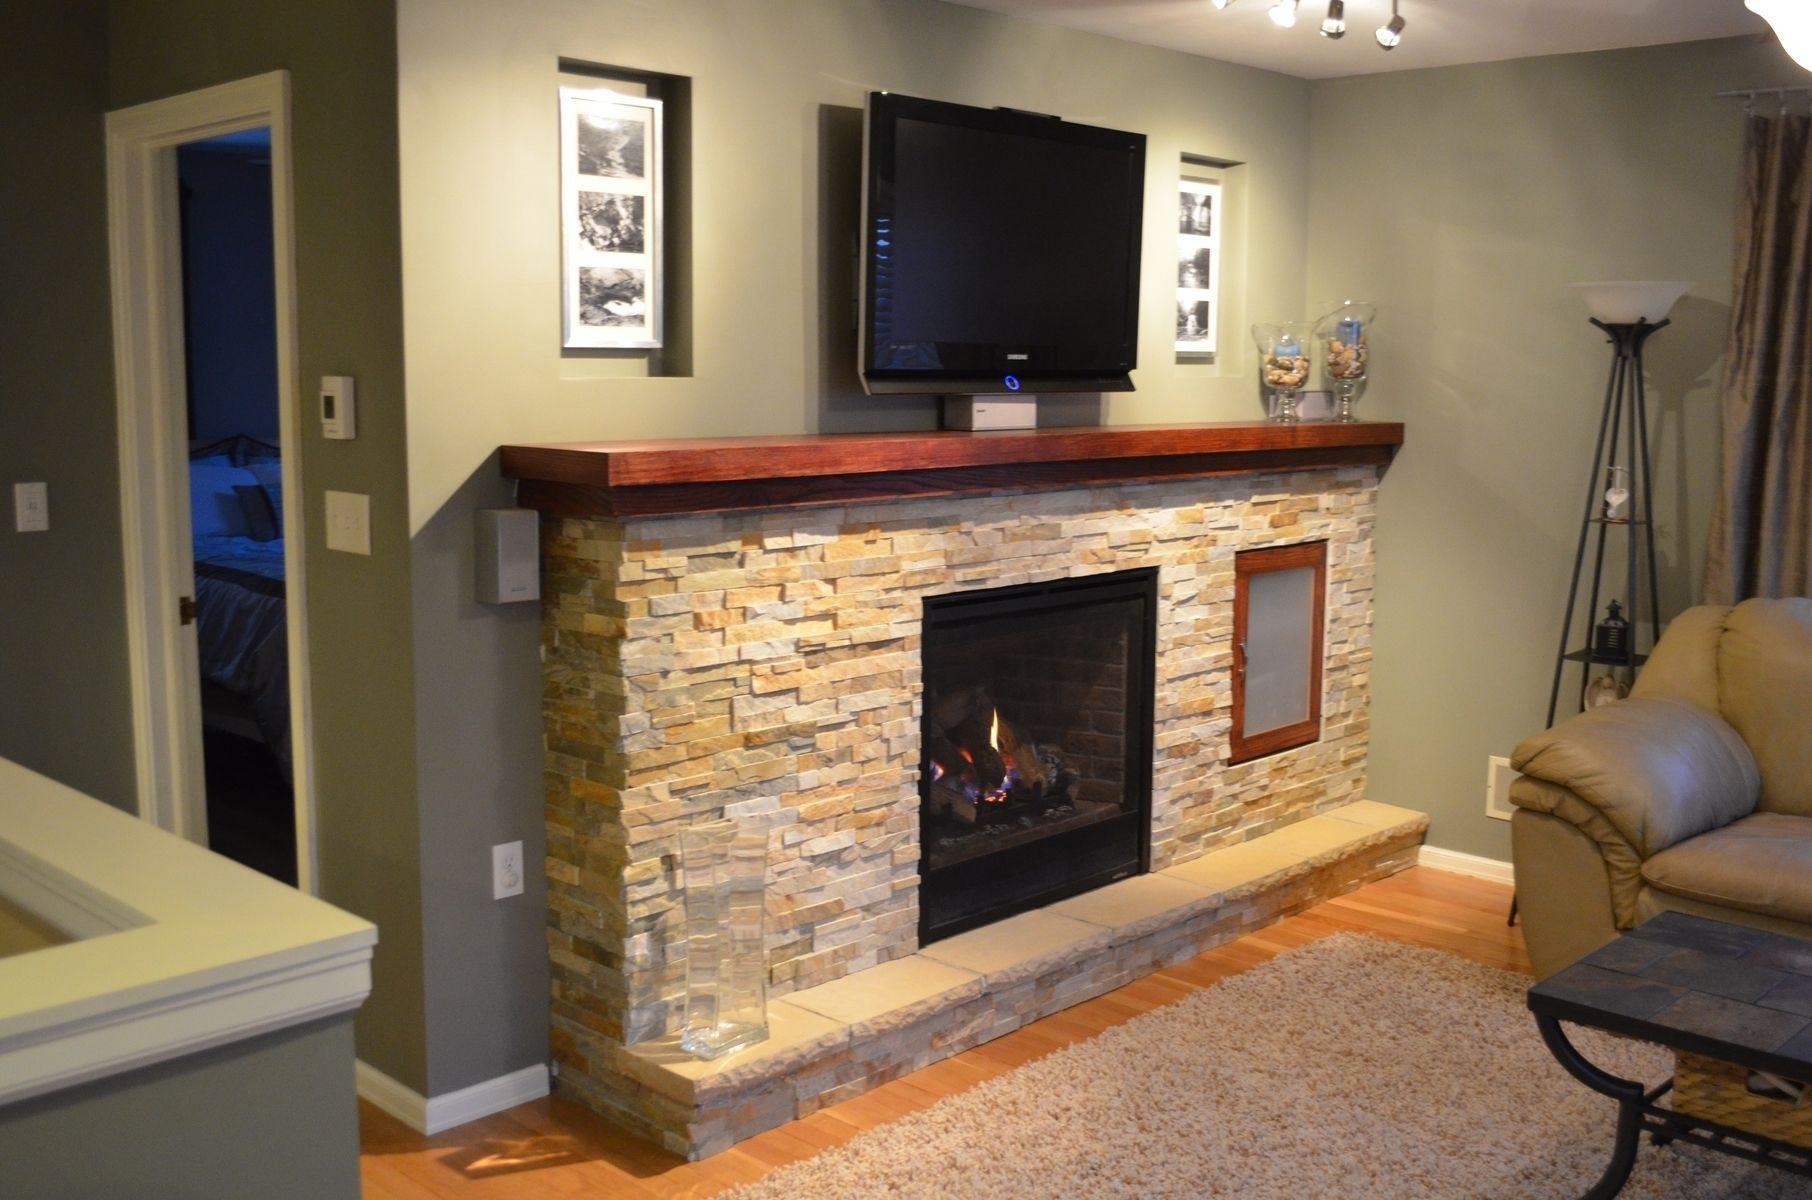 Natural Stone Fireplaces Unwinding Simpleness A Tall Amazing Fireplace Is The Focal Point Of Th Fireplace Design Christmas Fireplace Decor Fireplace Decor